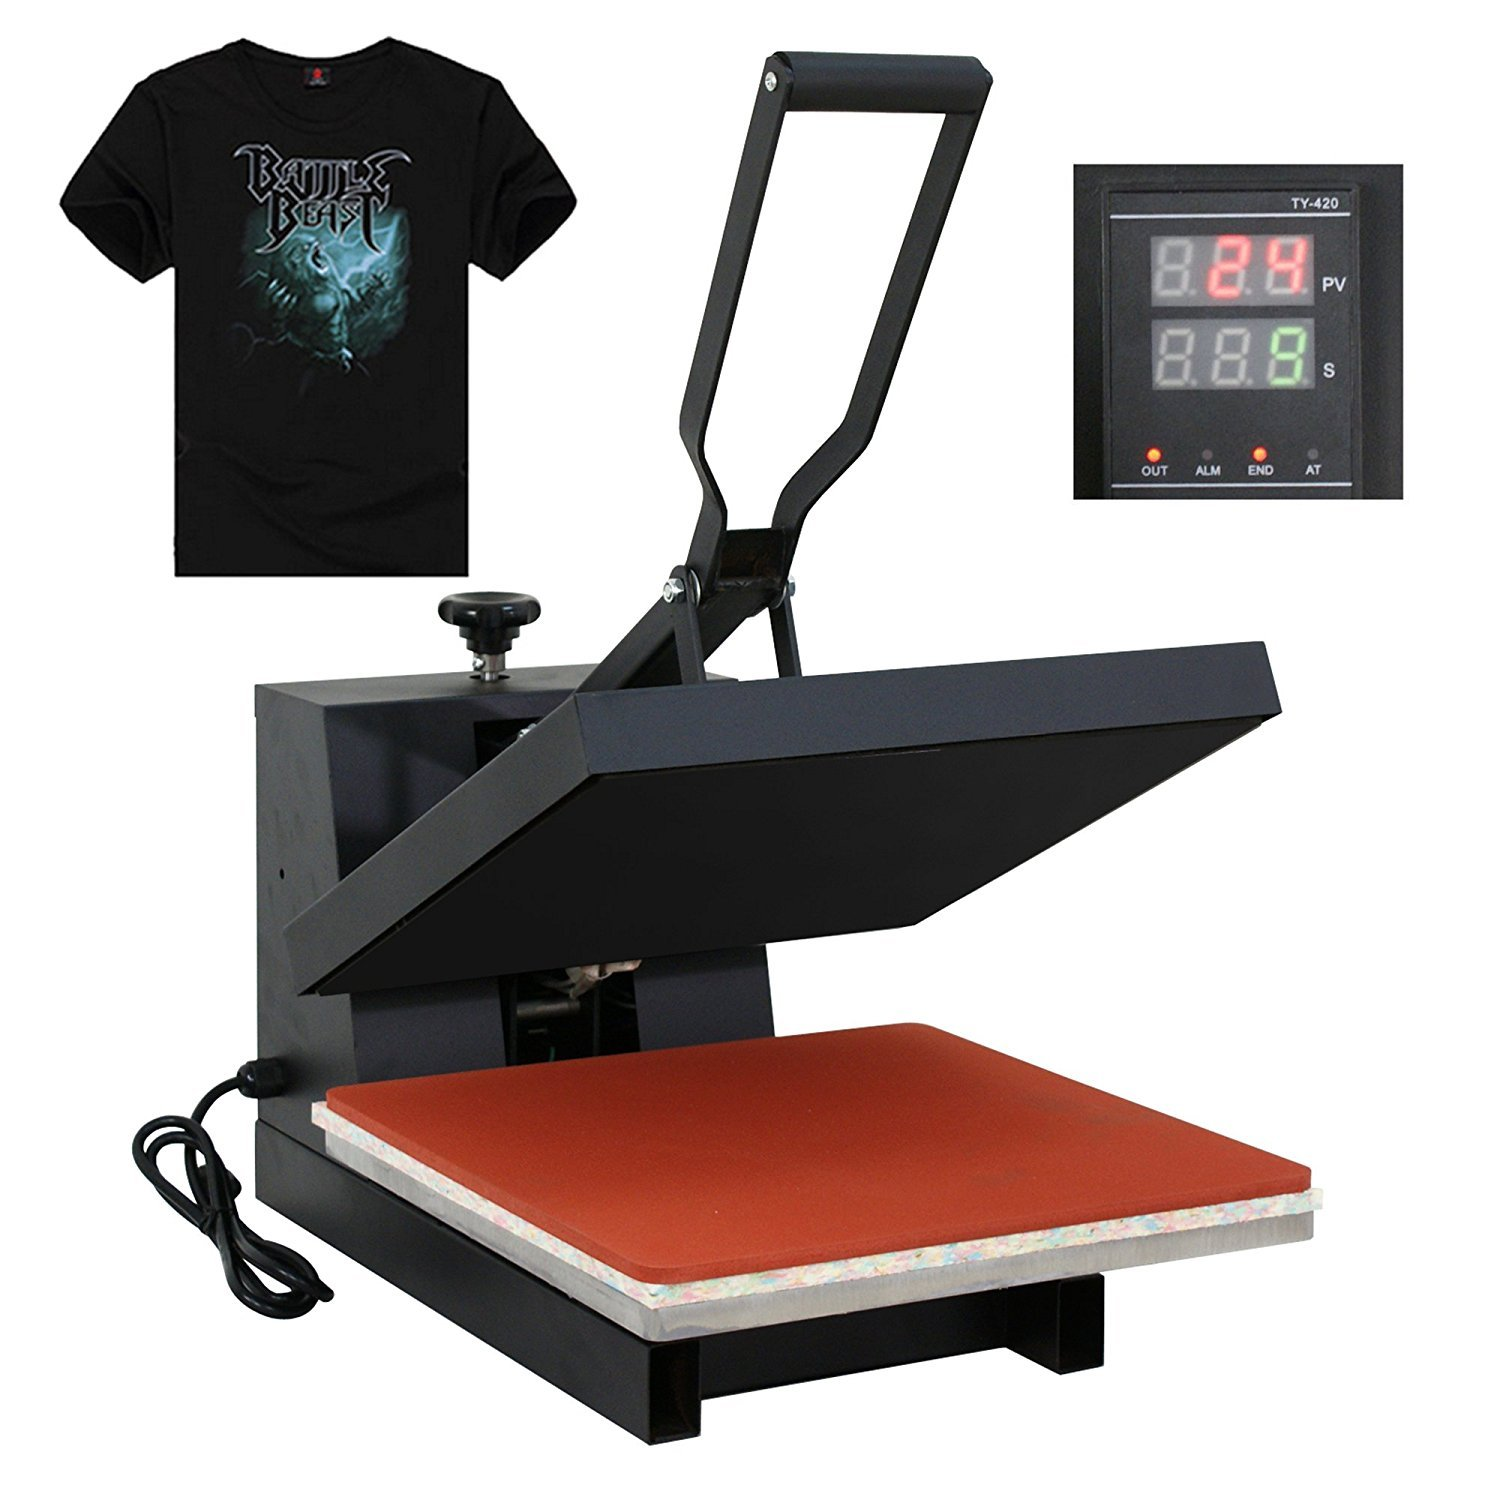 F2C Pro 5 in 1 Multifunction 360-degree Rotation Swing Away Heat Press Digital Transfer T-Shirt Press Sublimation Transfer Machine Heat Press Machine for T Shirt, Caps, Mugs, Plates